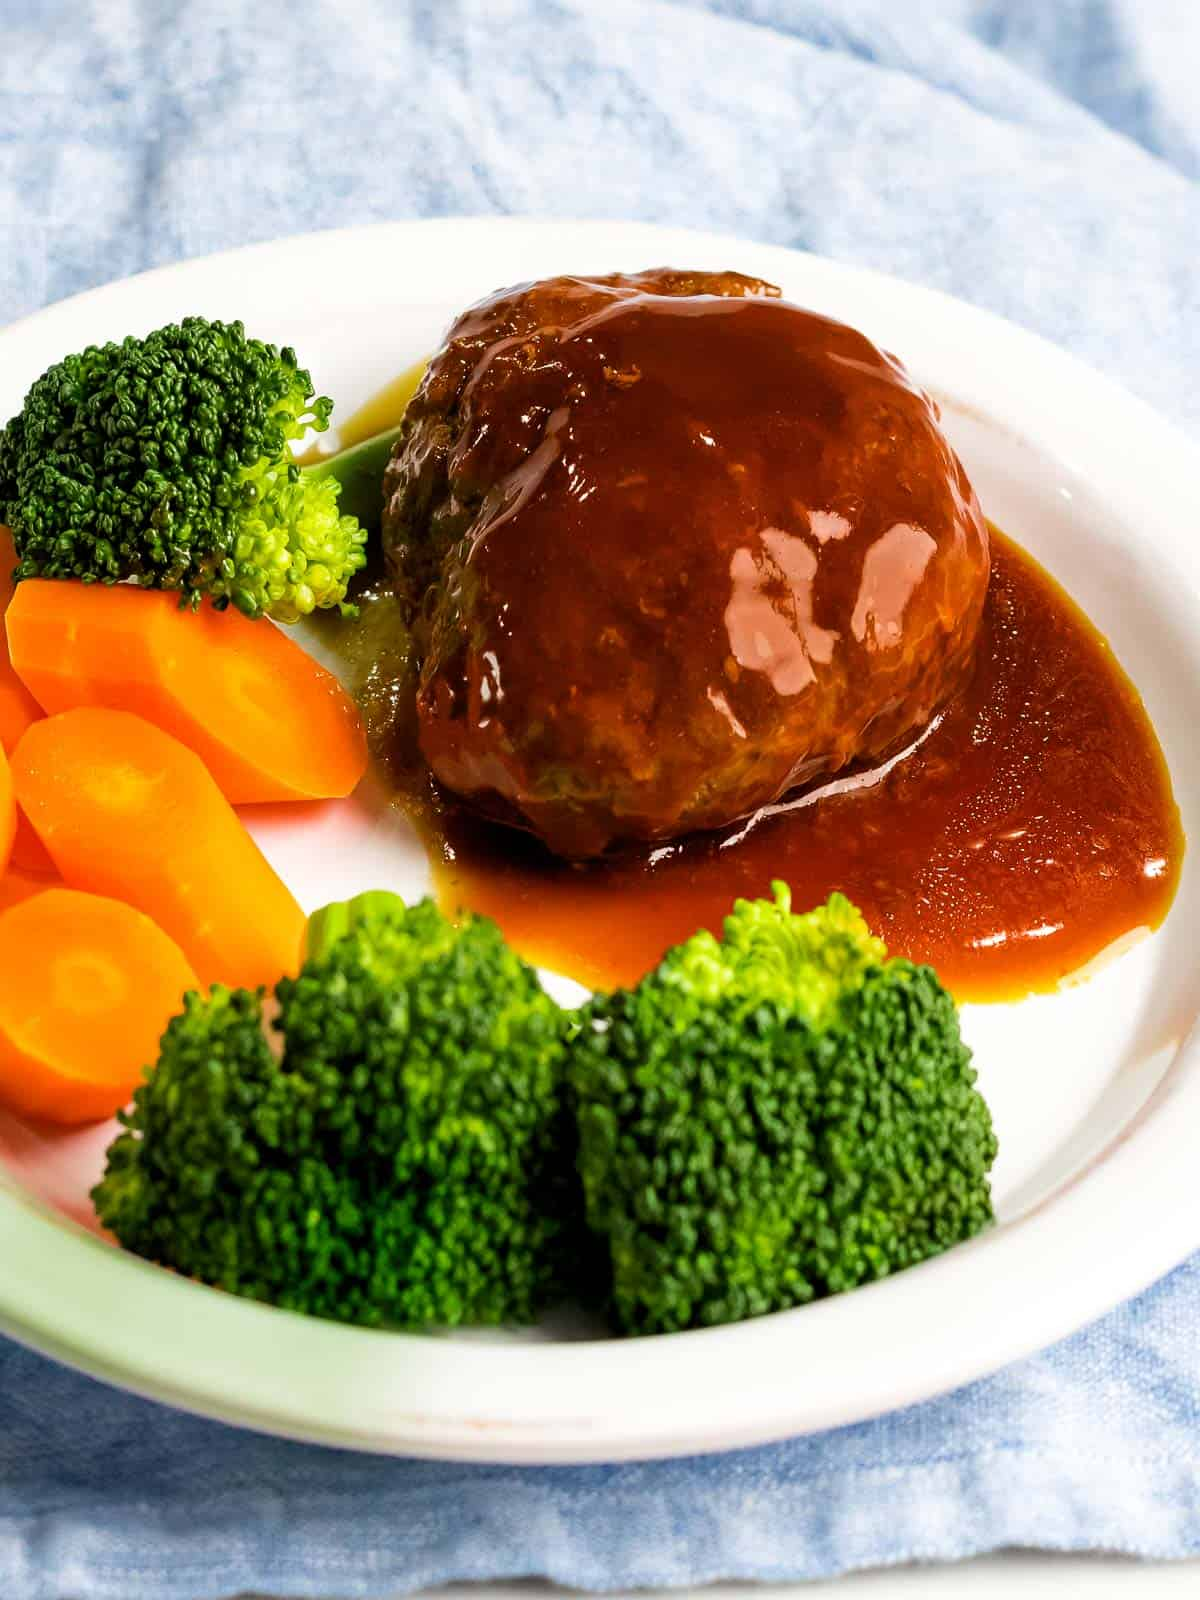 Juicy, tender Japanese hamburger steak (hambāgu ハンバーグ) covered in tangy gravy on a white plate next to carrots and broccoli.